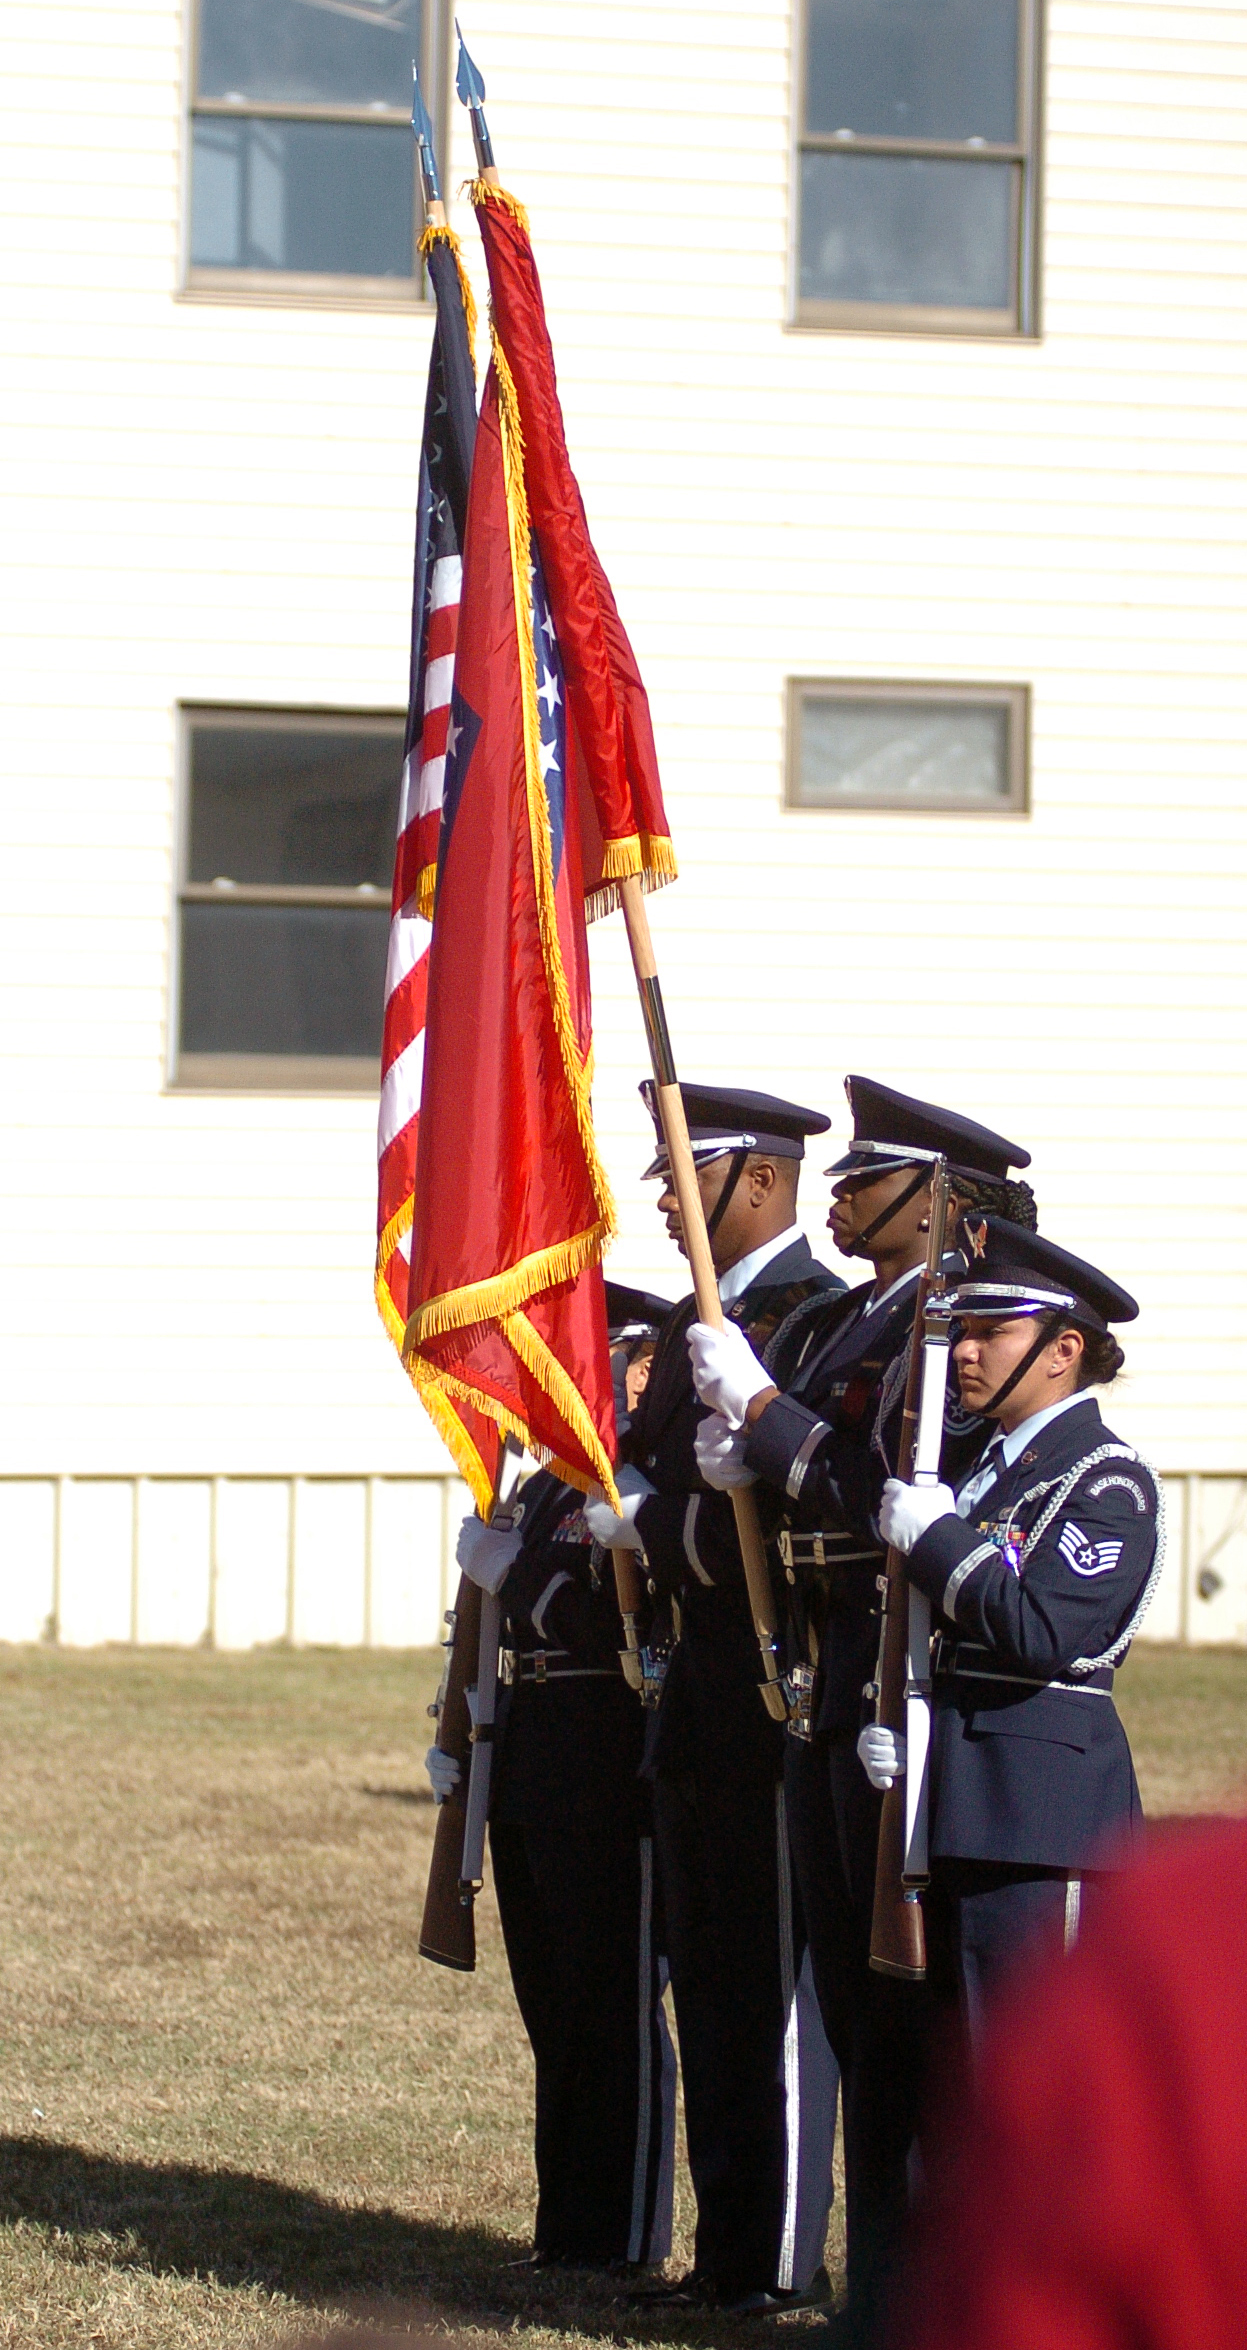 "A colorguard from the 188th wing stands during a ceremony at the fifth annual Veterans Day Parade at Chaffee Crossing was held on Saturday, November 12, 2016 at the Chaffee Crossing Historic District in Fort Smith. The parade's theme was ""Women In The Military,"" and was held to honor veterans from all branches of service and all U.S. wars. (Please include credit when using this photo) STEVE MARQUEZ/StMarq Photography"